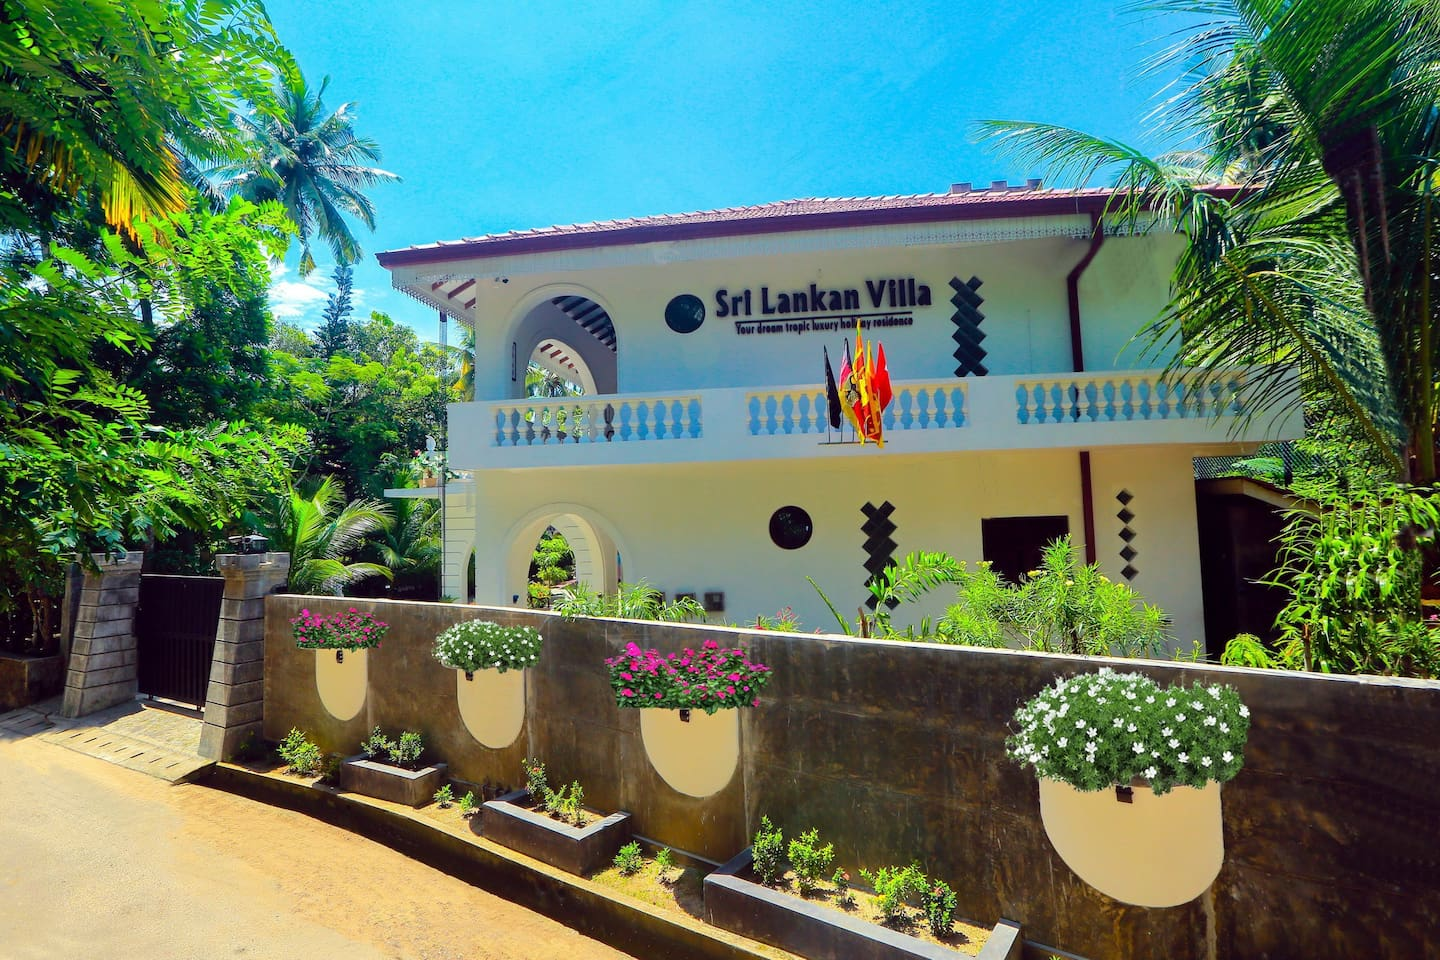 Sri Lankan Villa from the Street Front with the main Entrance.